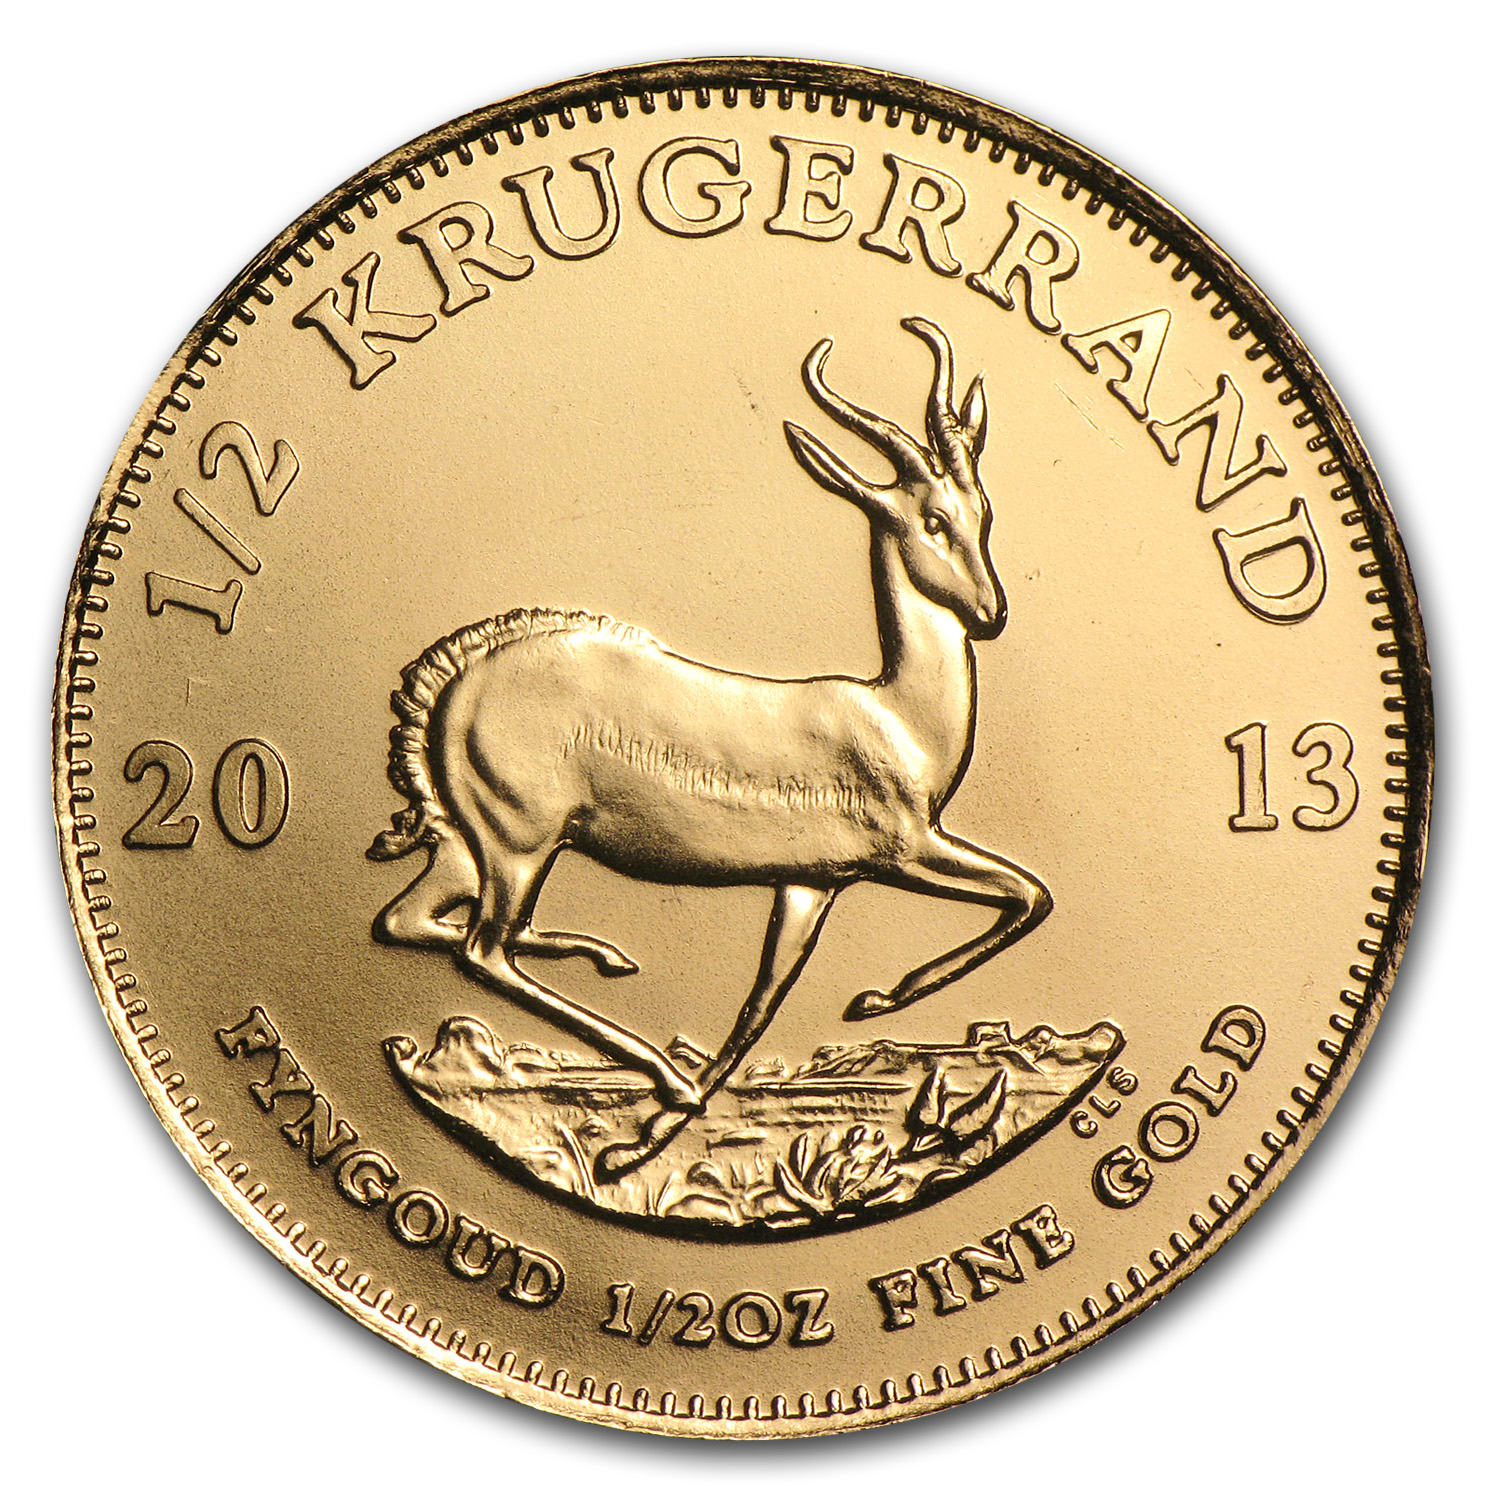 2013 South Africa 1/2 oz Gold Krugerrand